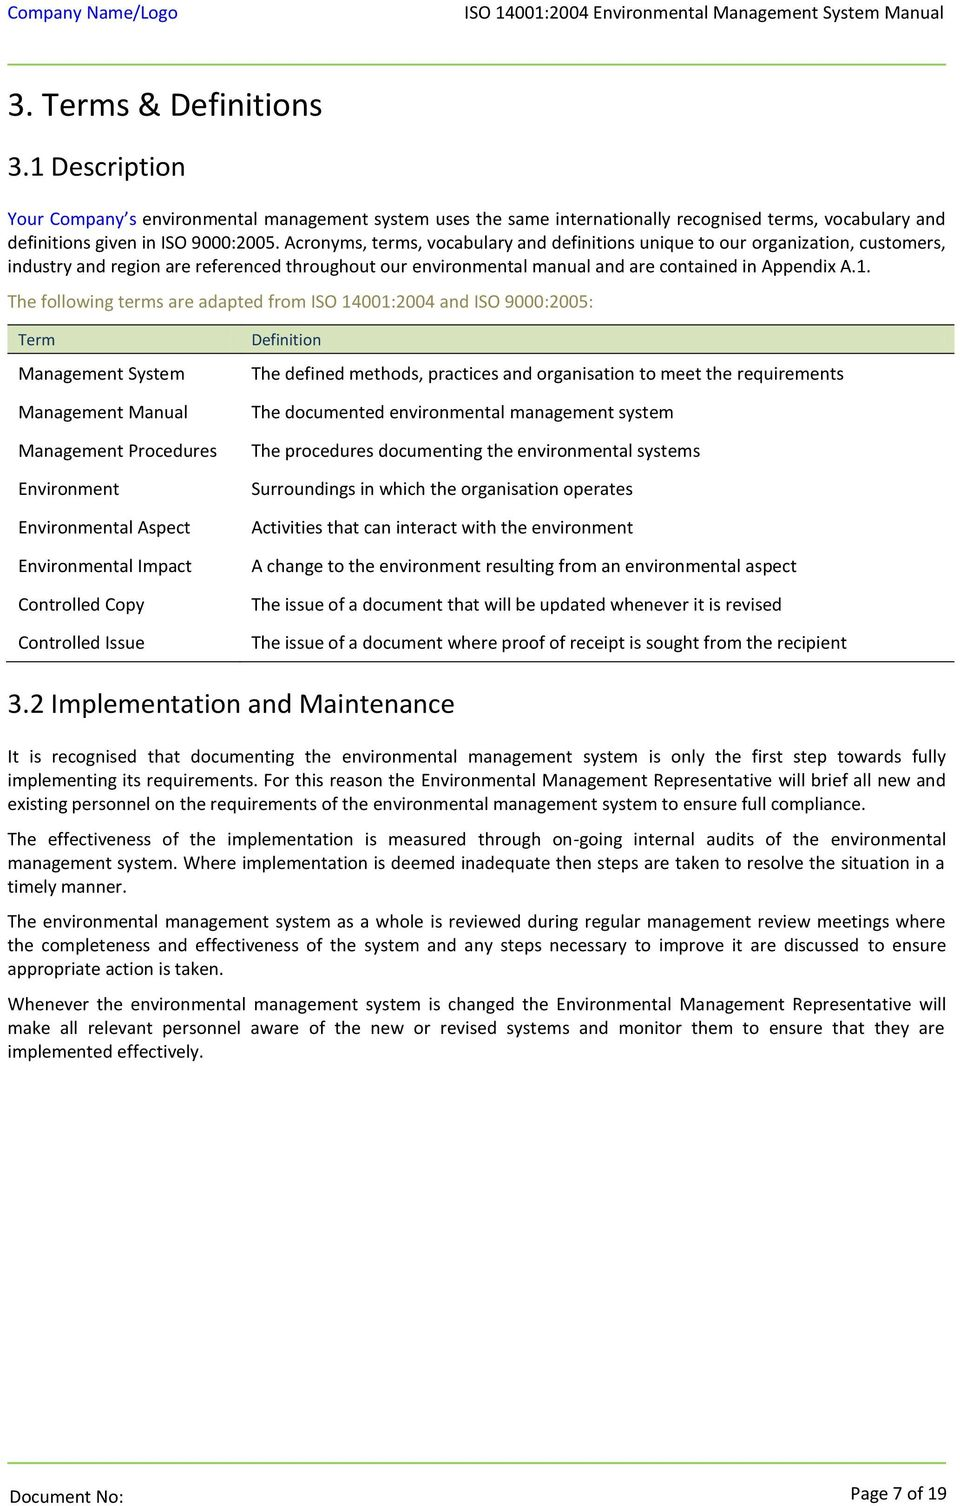 ISO 14001:2004 Environmental Management System Manual - PDF